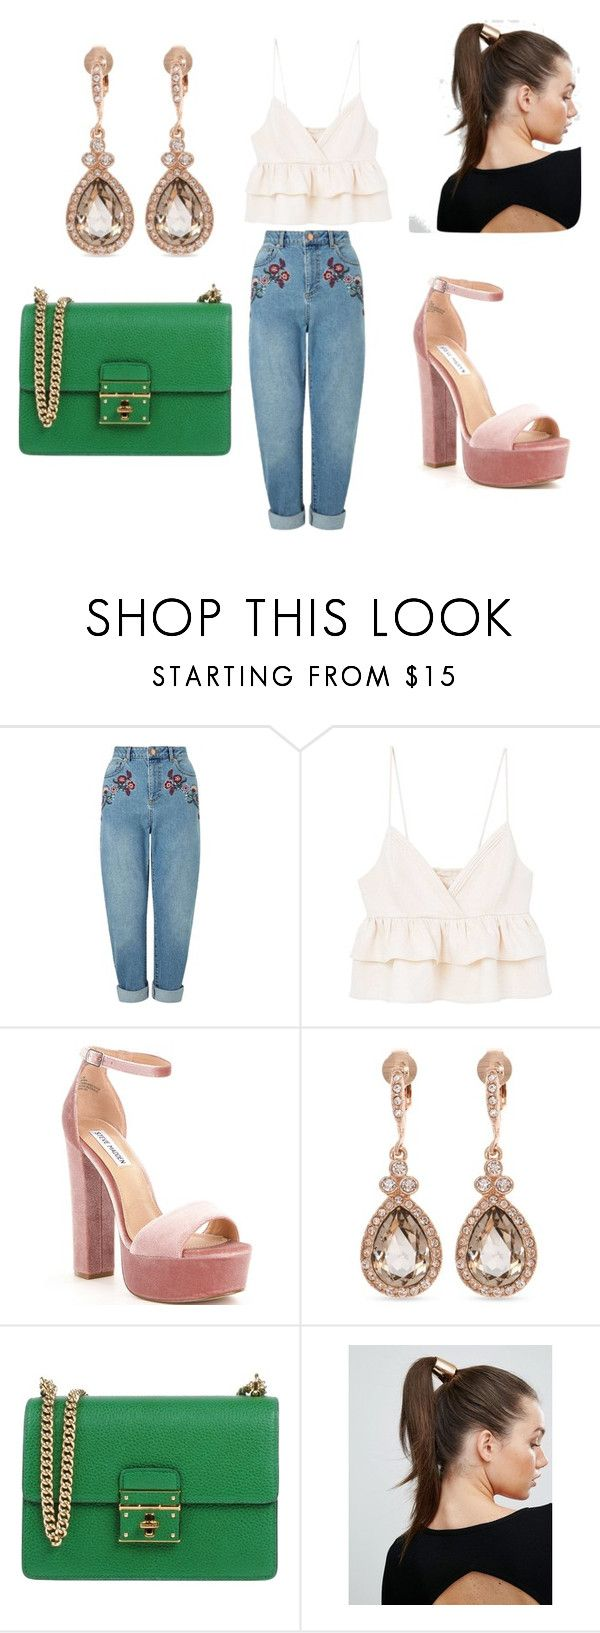 mom jeans by tatyana-ransome on Polyvore featuring MANGO, Miss Selfridge, Steve Madden, Dolce&Gabbana, Givenchy and Johnny Loves Rosie